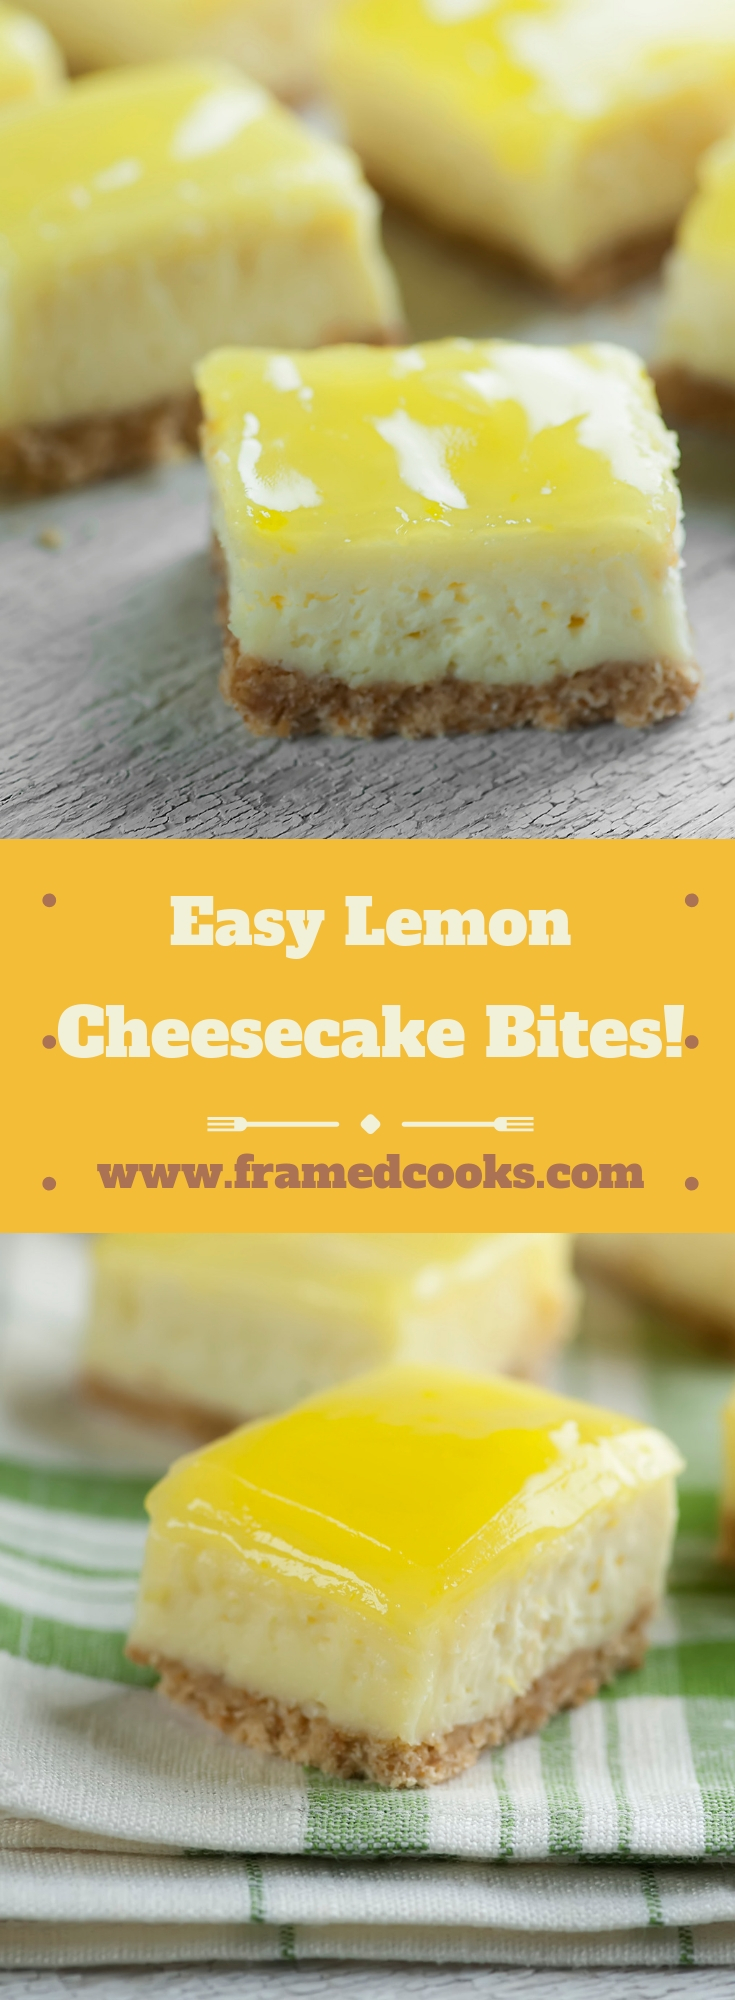 This easy mini lemon cheesecake bites recipe is full of creamy cheesecake and sparkling lemon flavor, in a fun bite-sized serving.  Bet you can't eat just one!